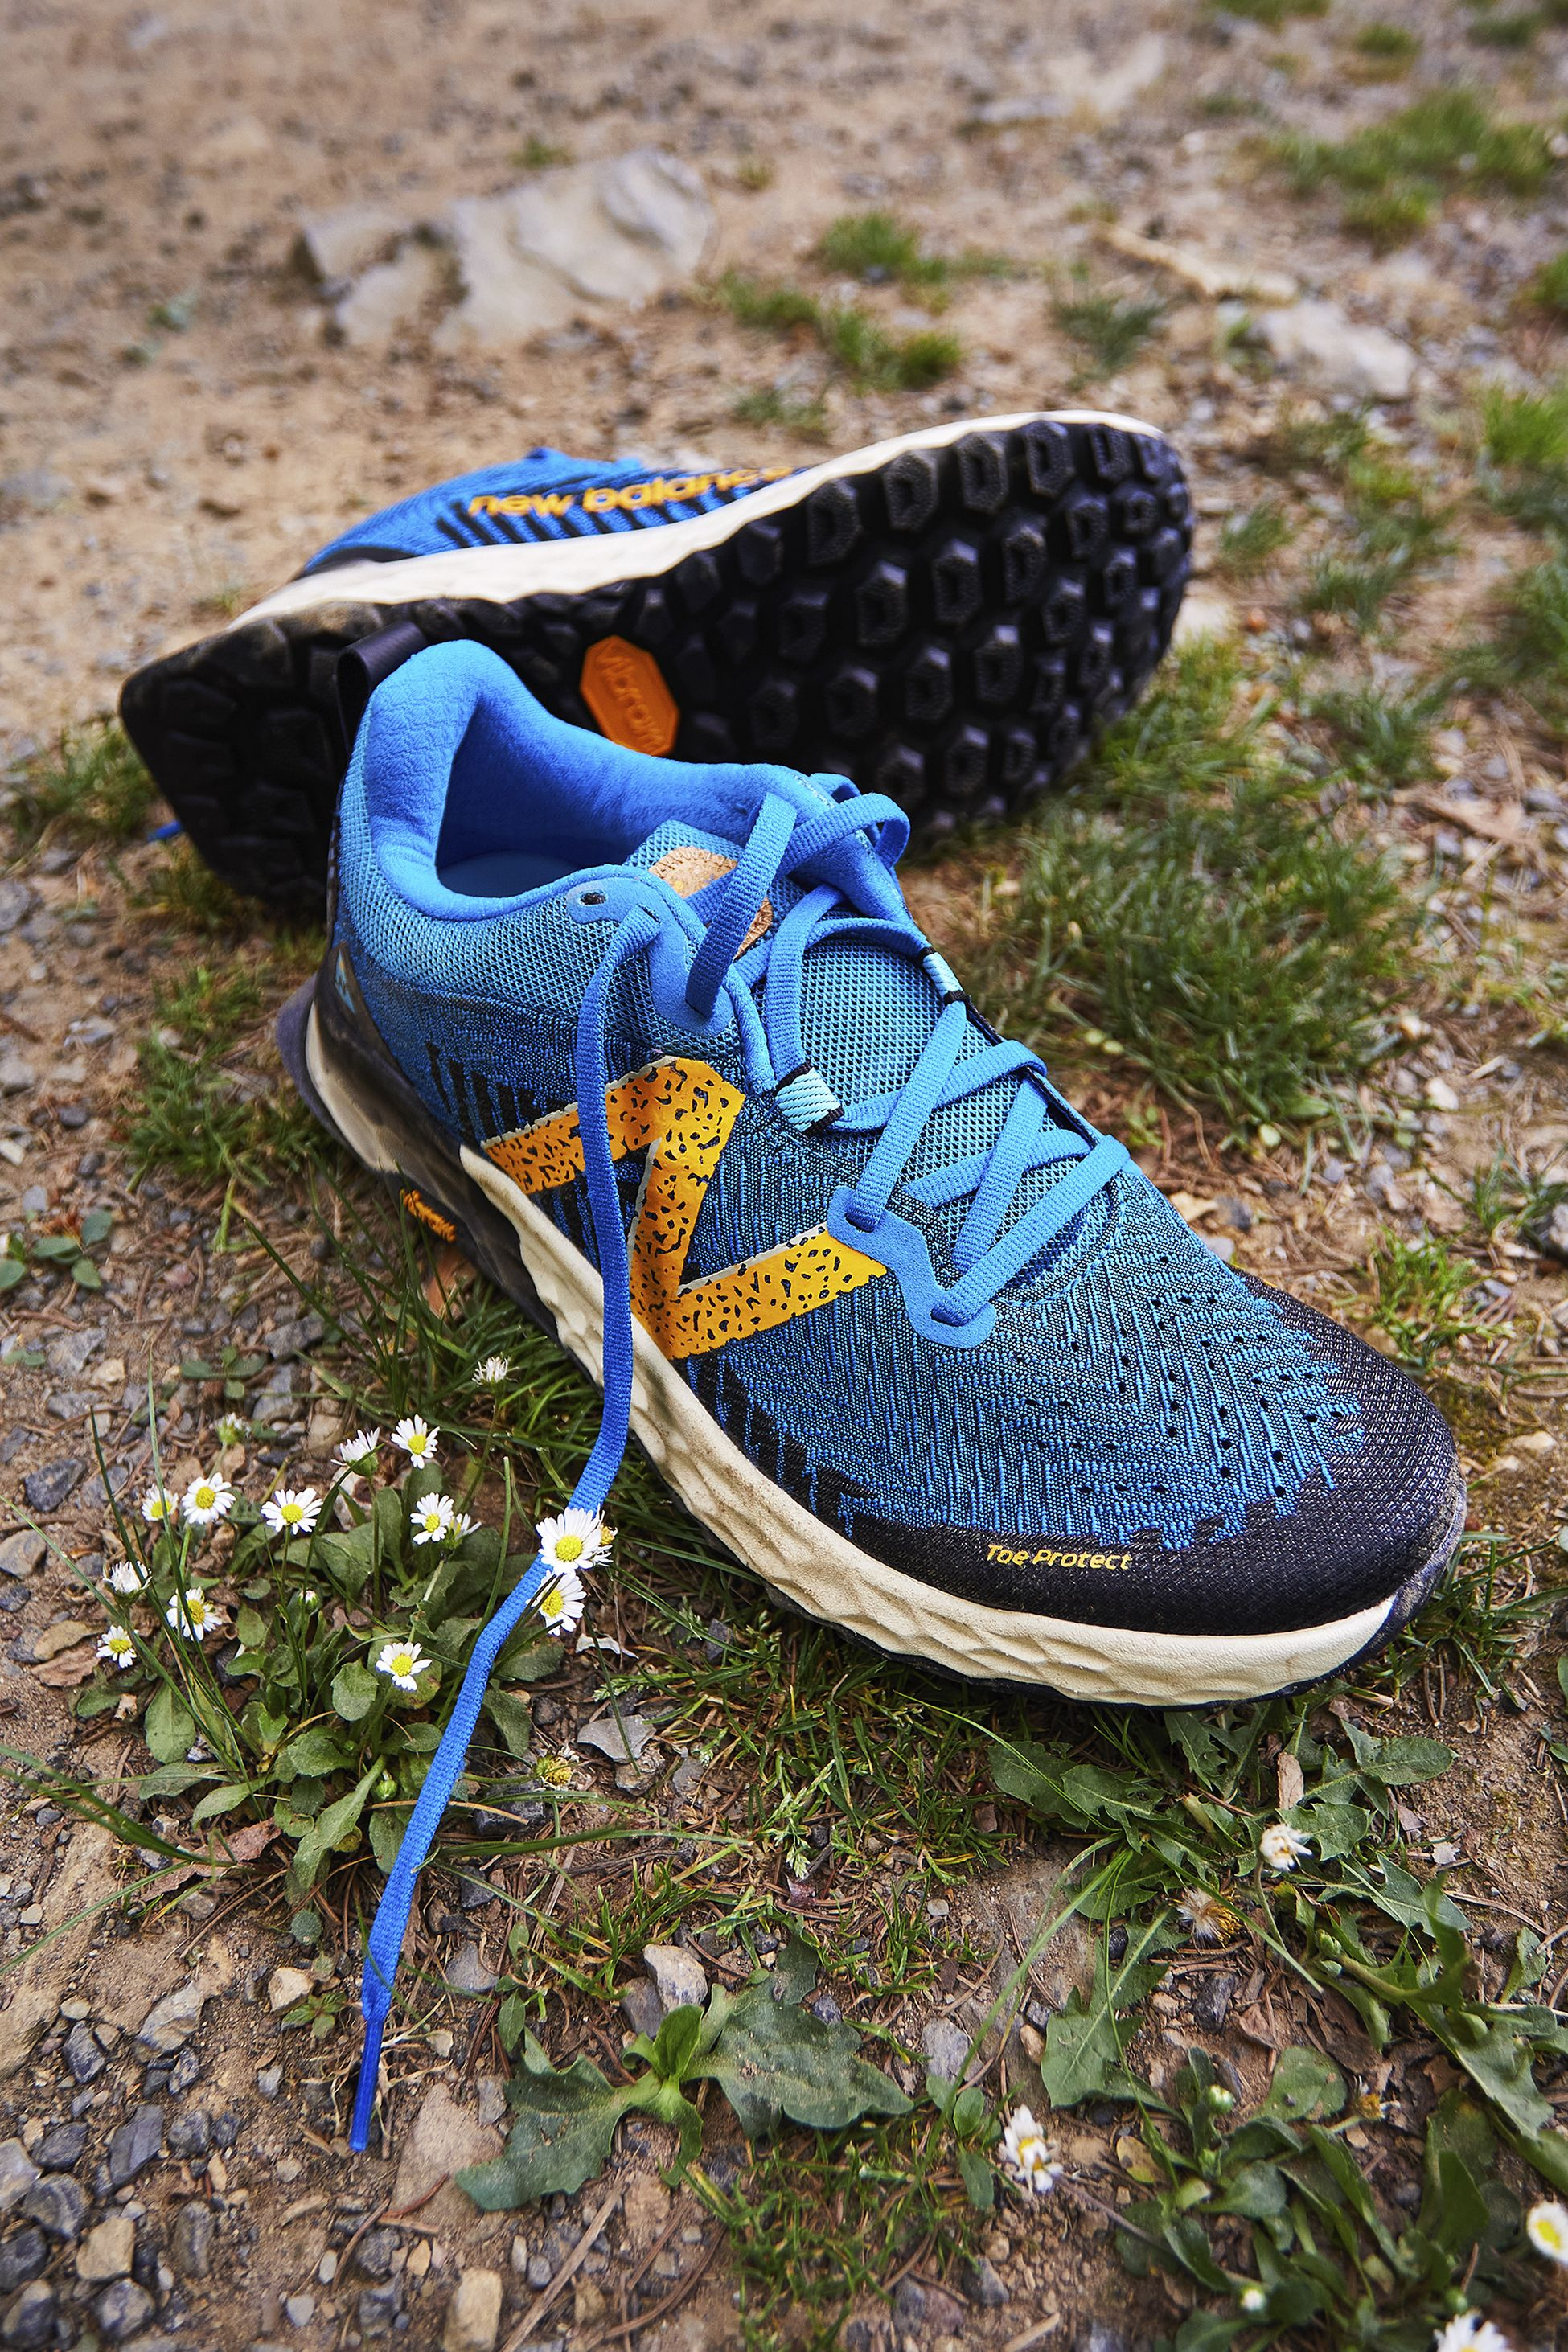 New Balance Trail Shoes 2021 | Best Trail Running Shoes